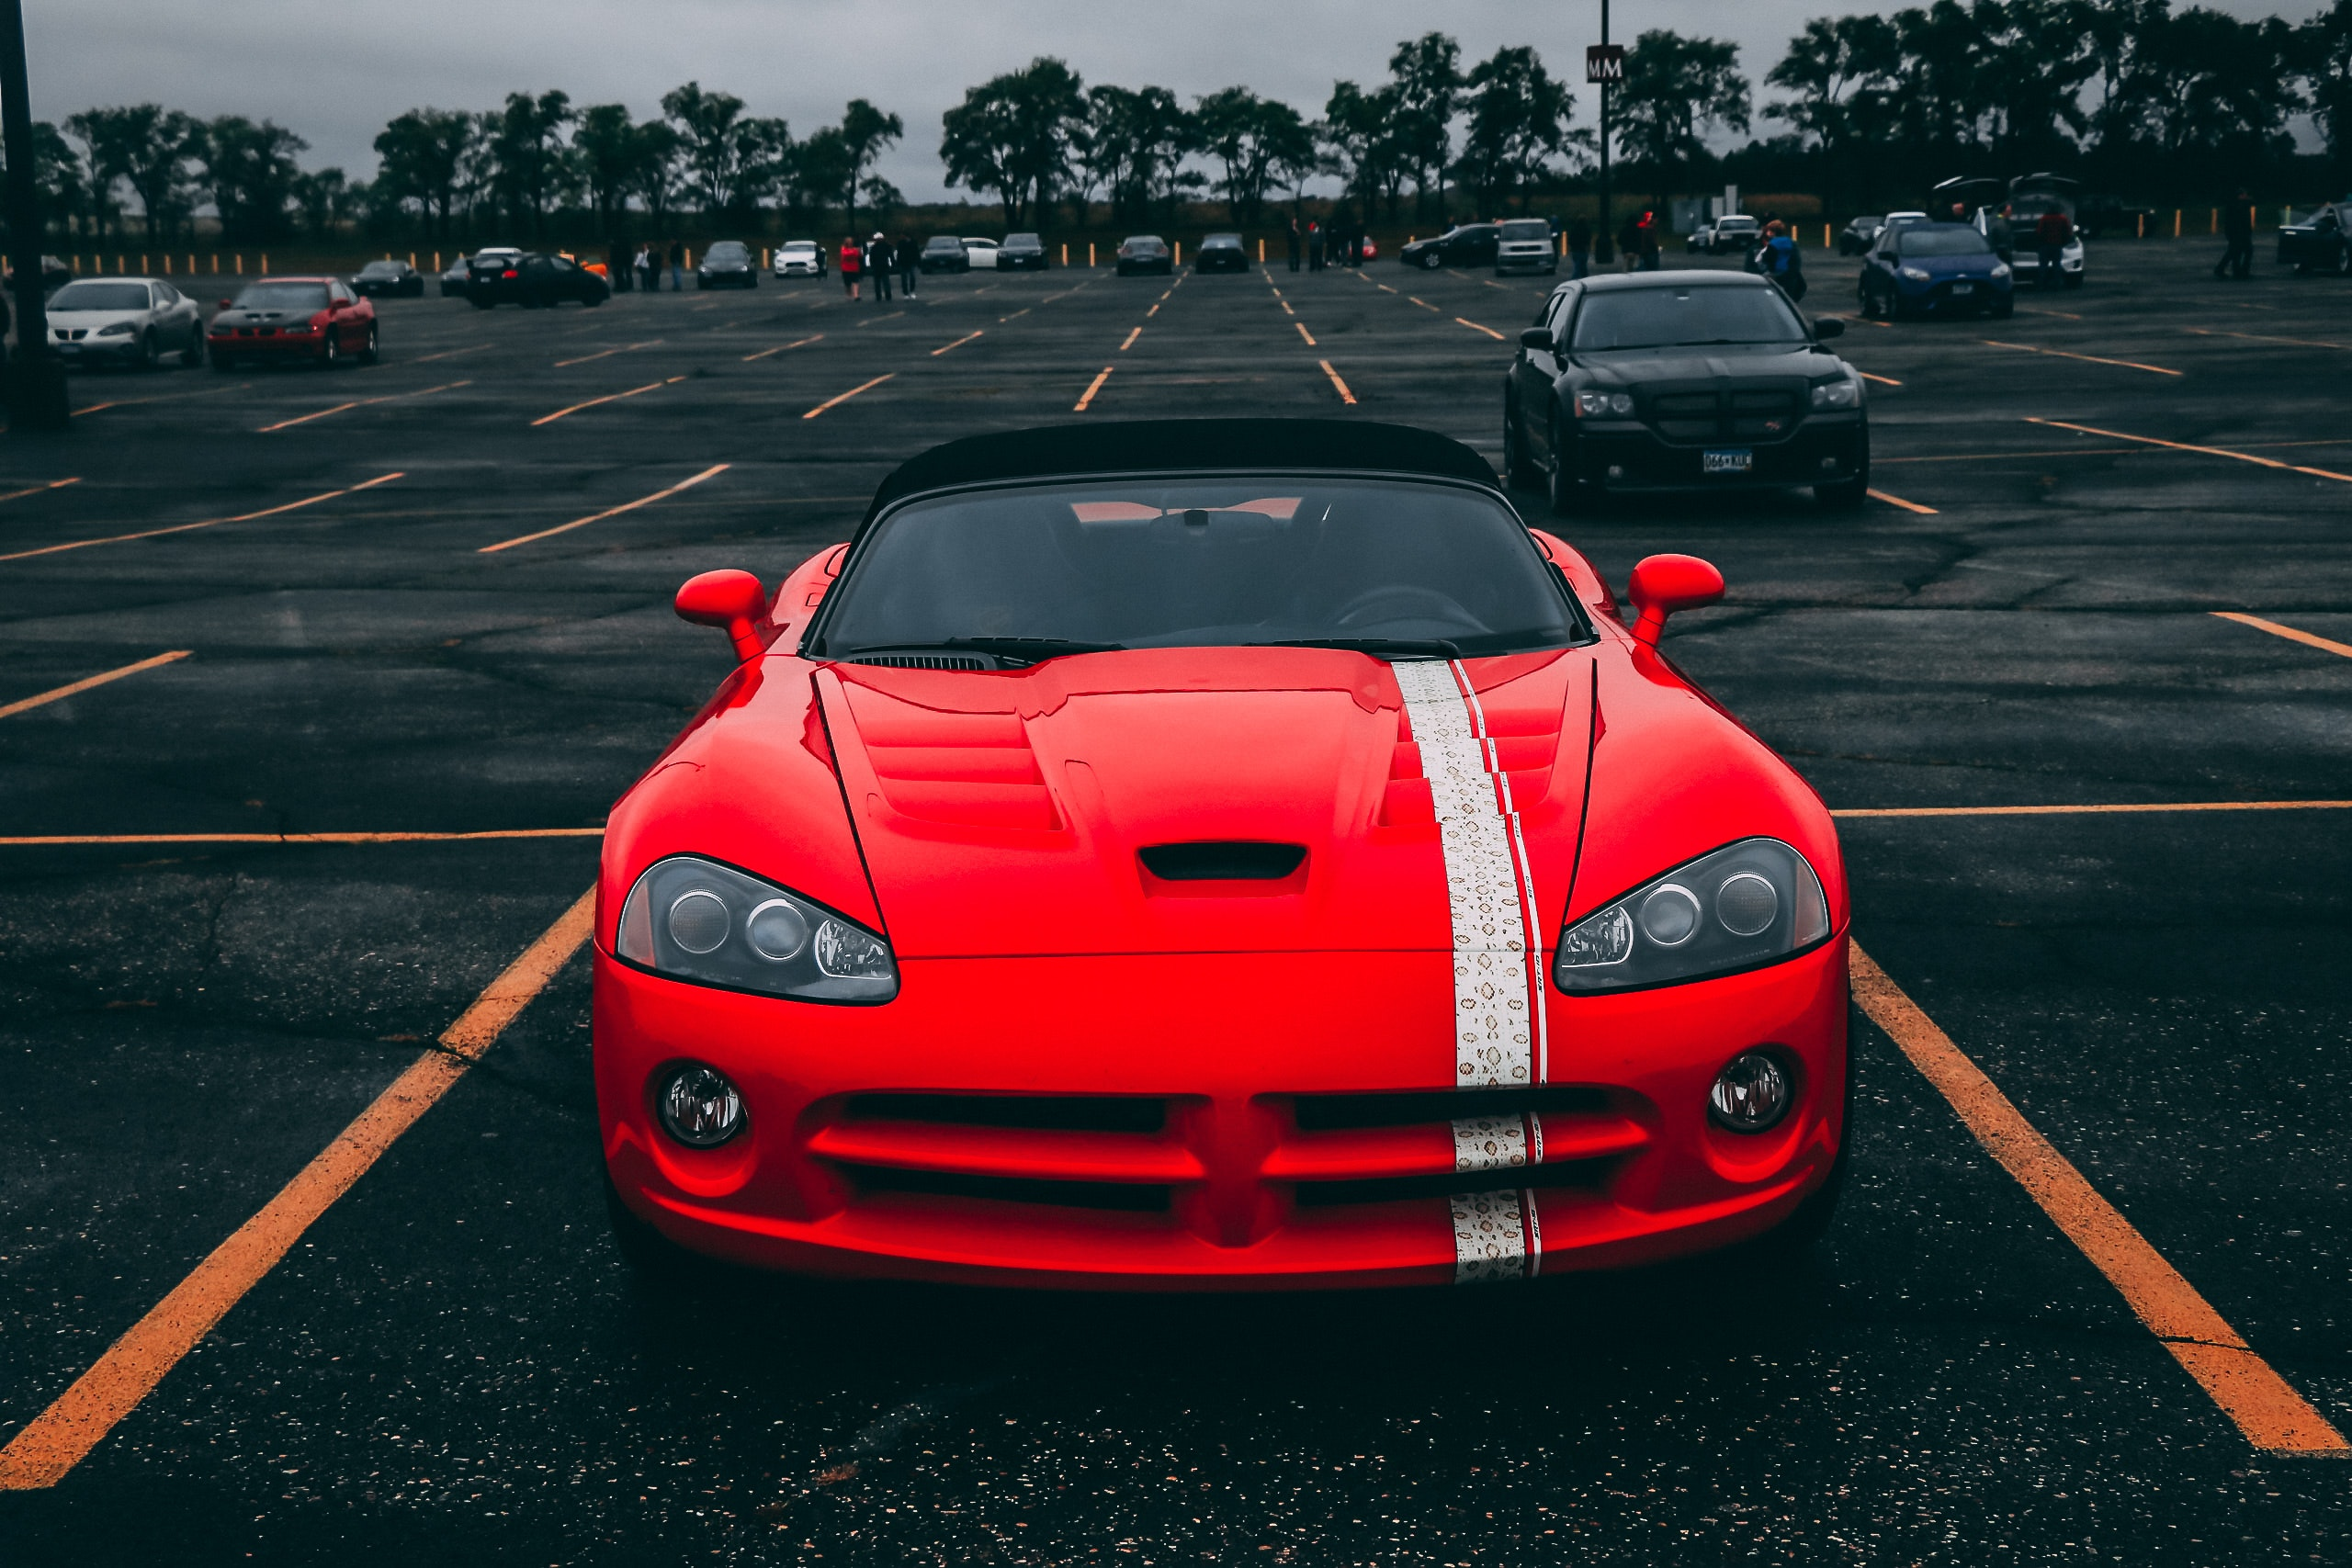 Red Convertible Coupe on Black Surface, Asphalt, Shiny, Viper, Vehicles, HQ Photo